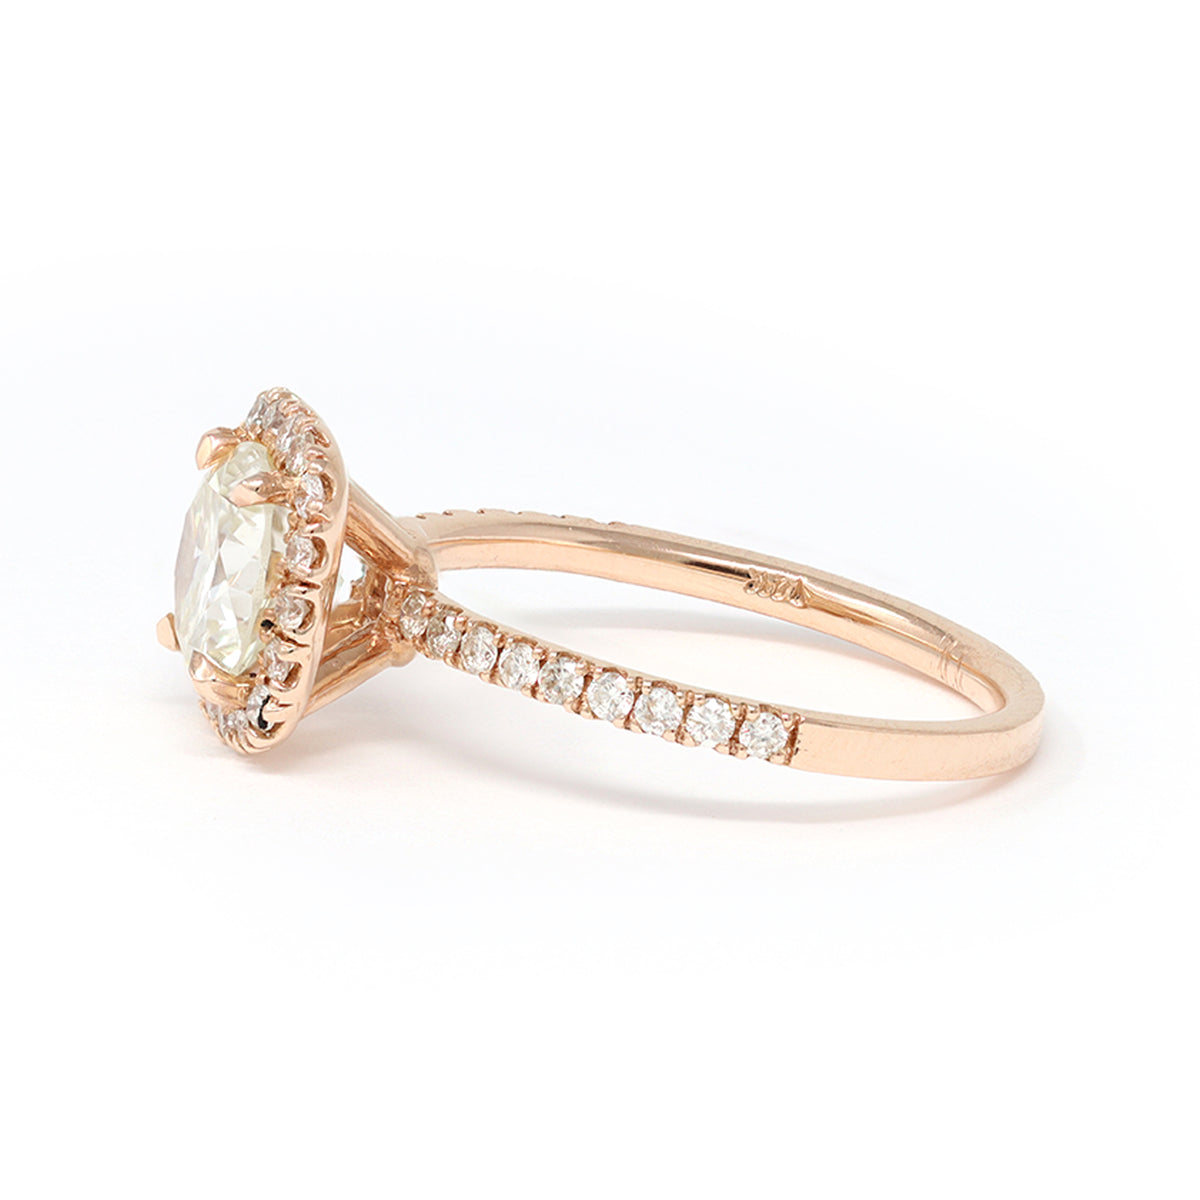 GIA Certified Modern Halo Solitaire 1.23 Carat Diamond Ring in 14 Karat Gold side view